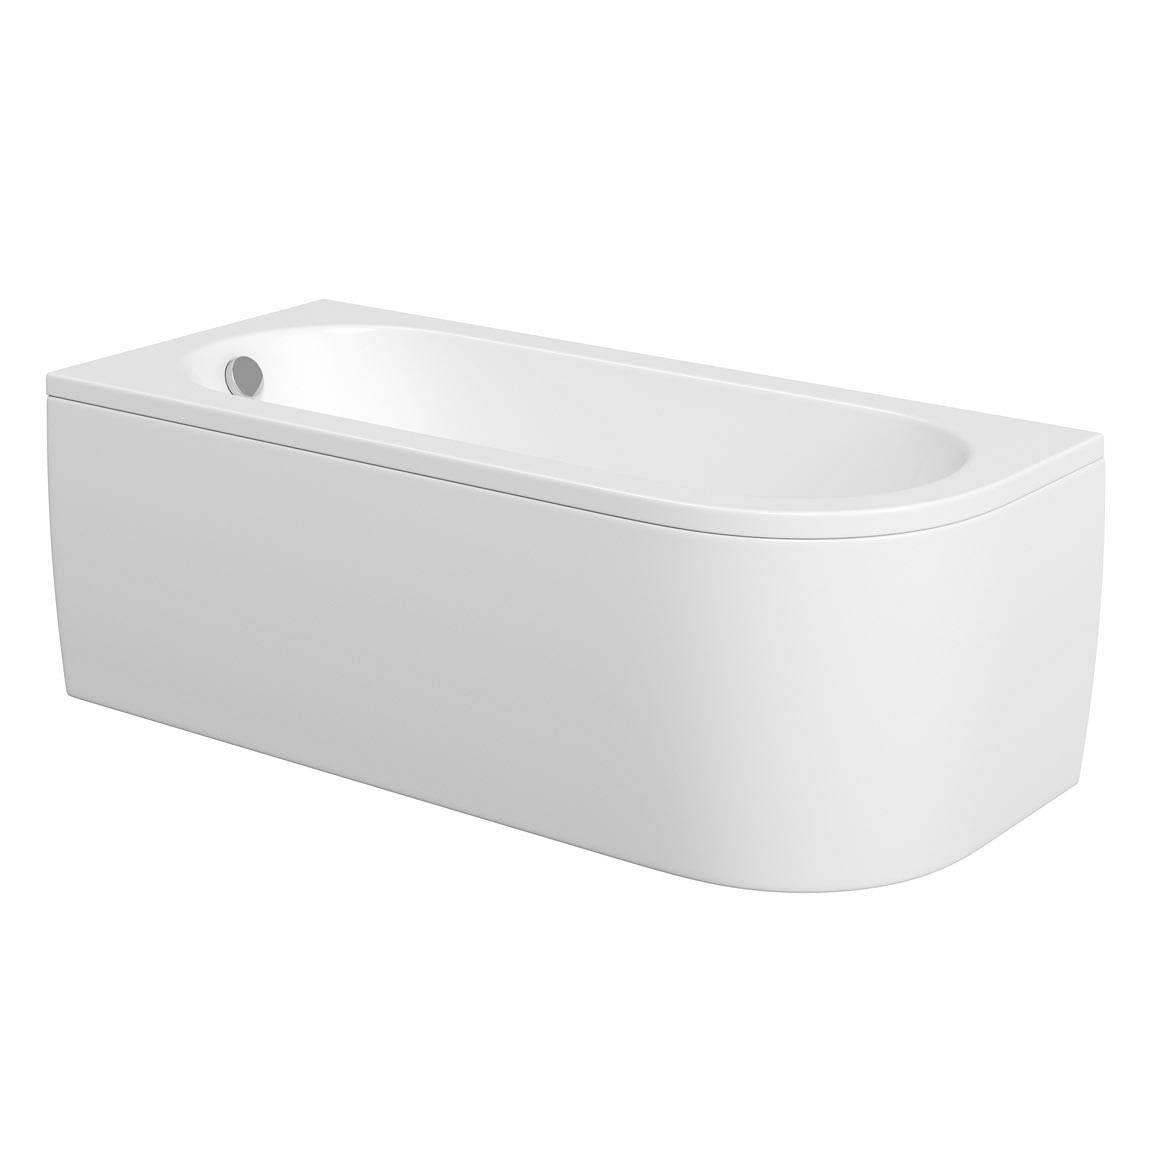 Orchard Elsdon D shaped left handed single ended bath offer pack